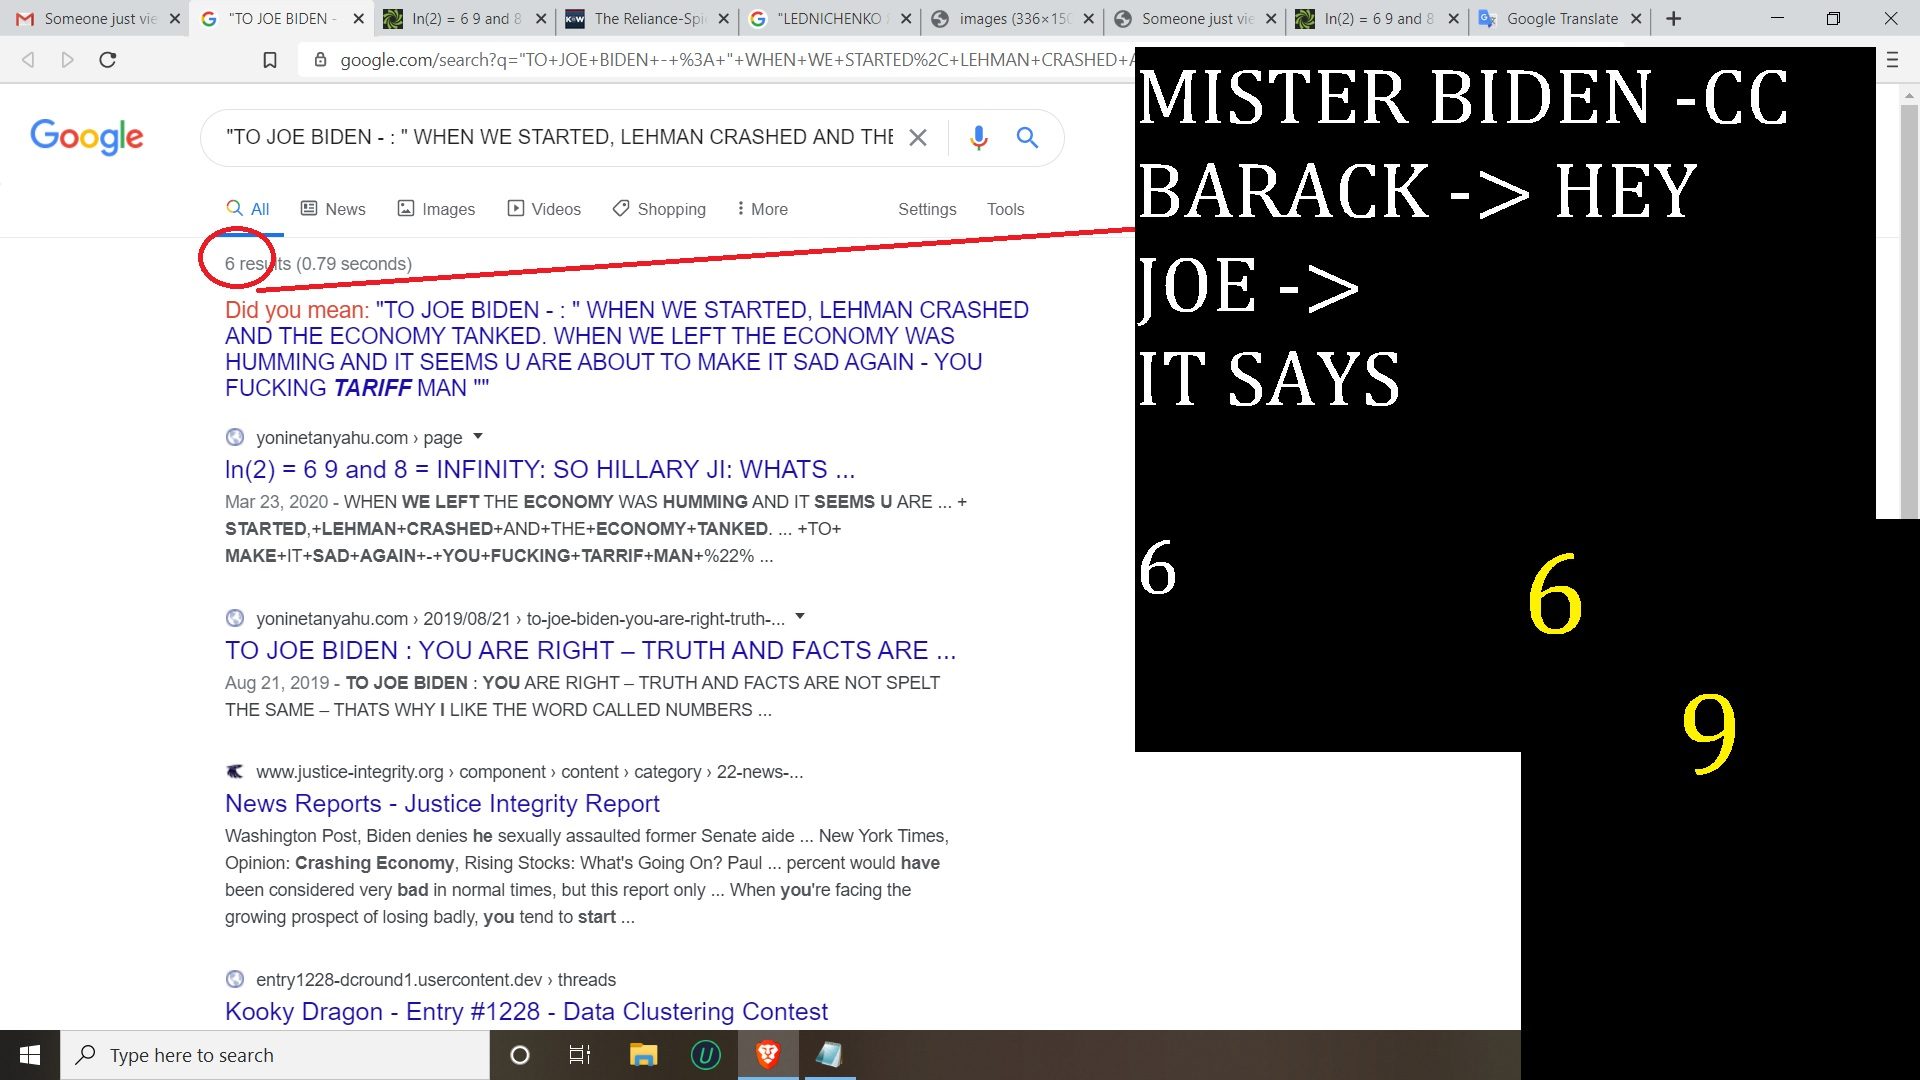 HOWZ 6 MISTER BIDEN AND BARACK REARSD THE CLINTON FROM LUCKNOW